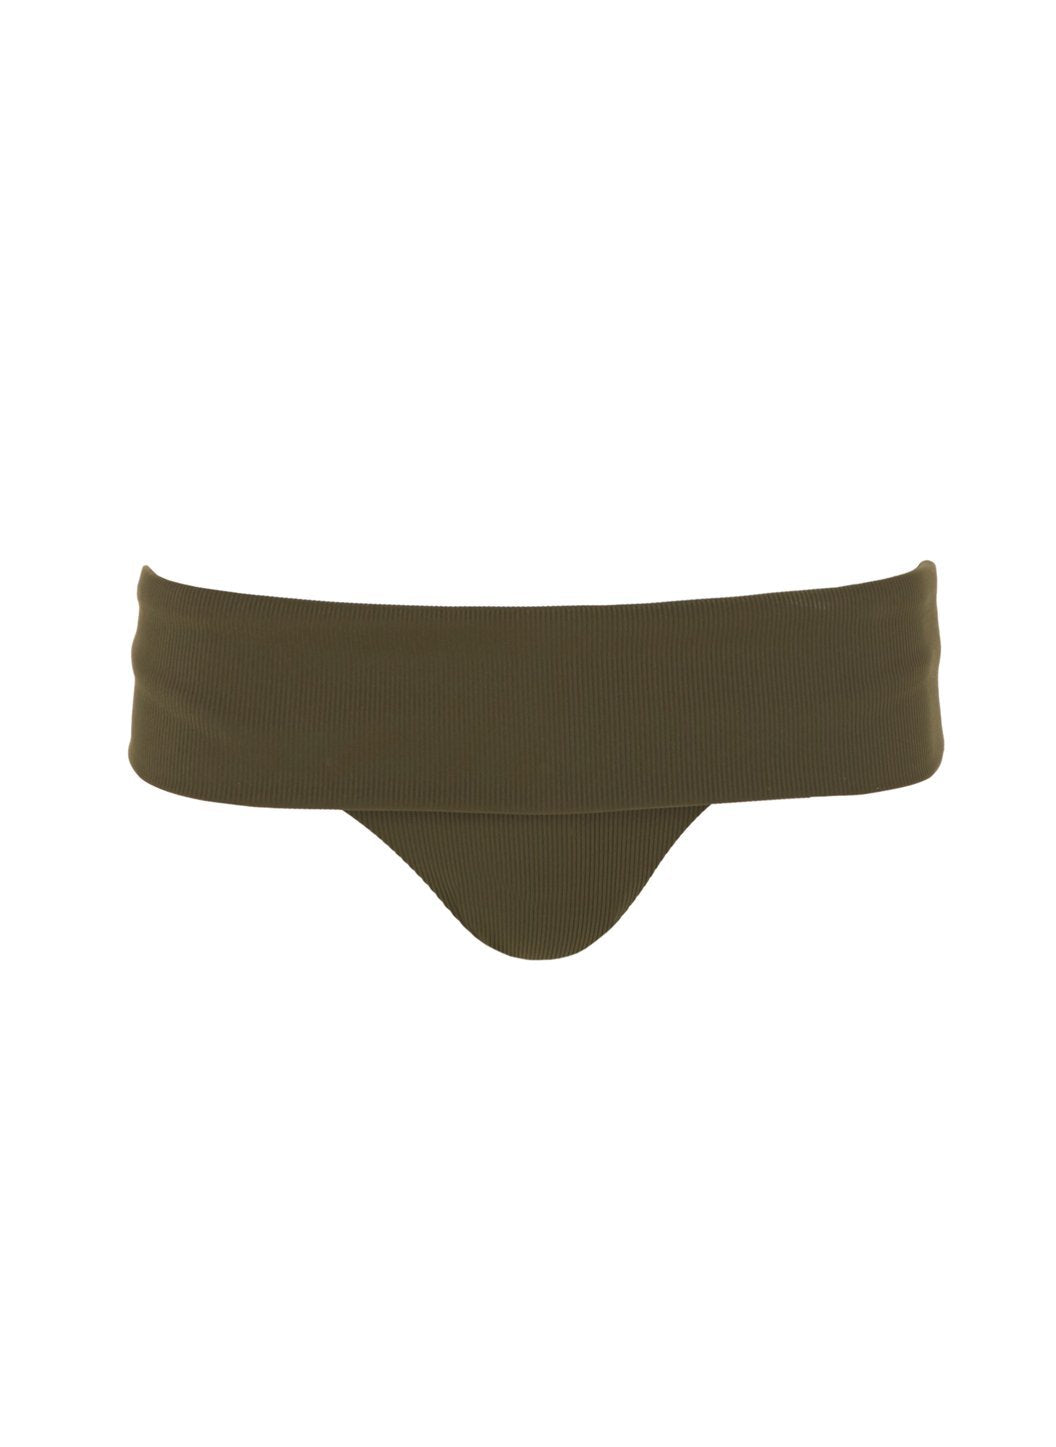 brussels olive ribbed bikini bottom